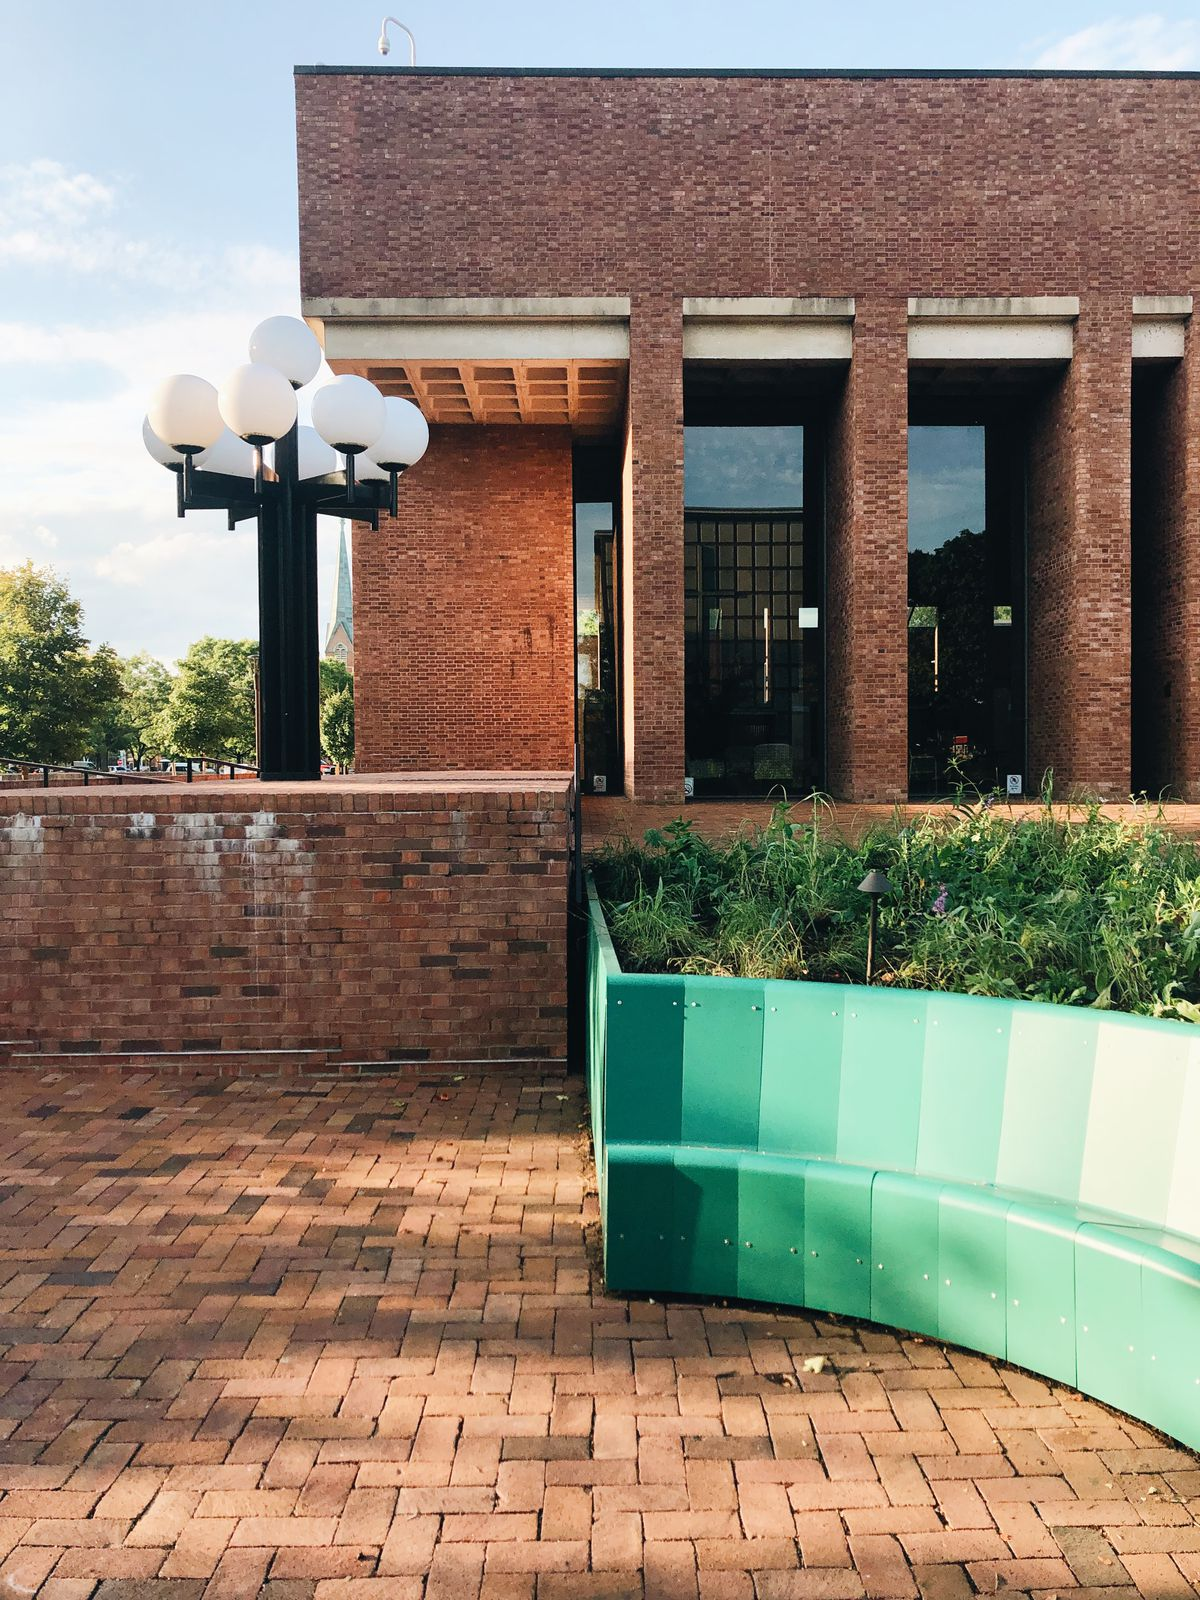 A seating bench designed with different shades of green stands out in the middle of an all-brick building. There is one streetlight and minimal landscaping